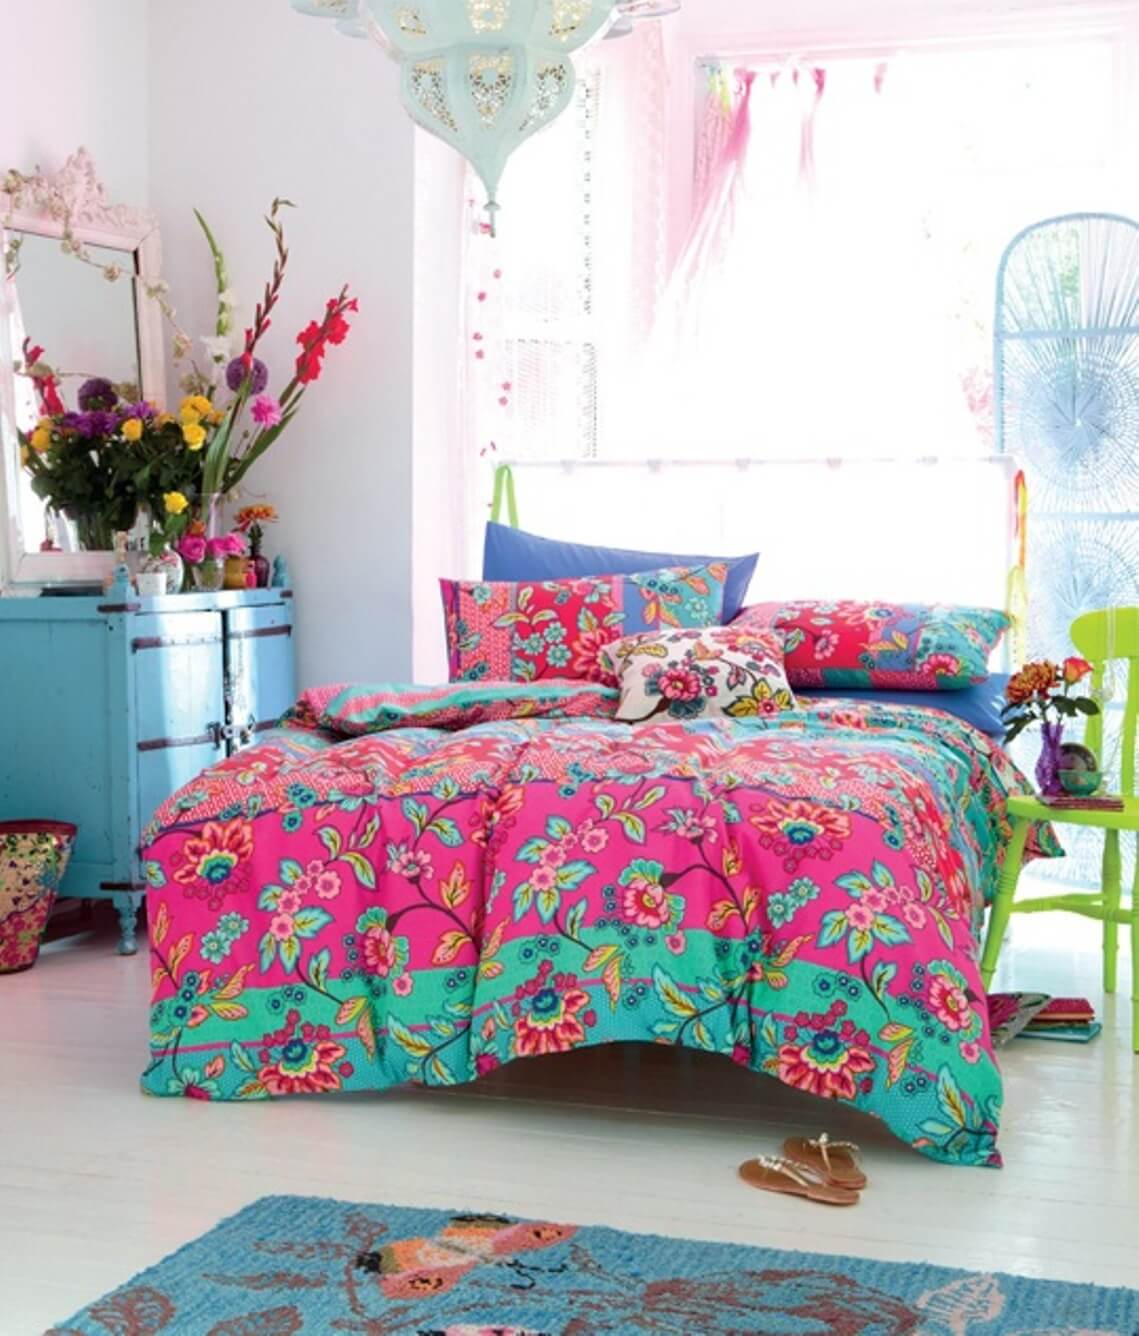 8 bohemian chic teen girl 39 s bedroom ideas https for Bedroom room decor